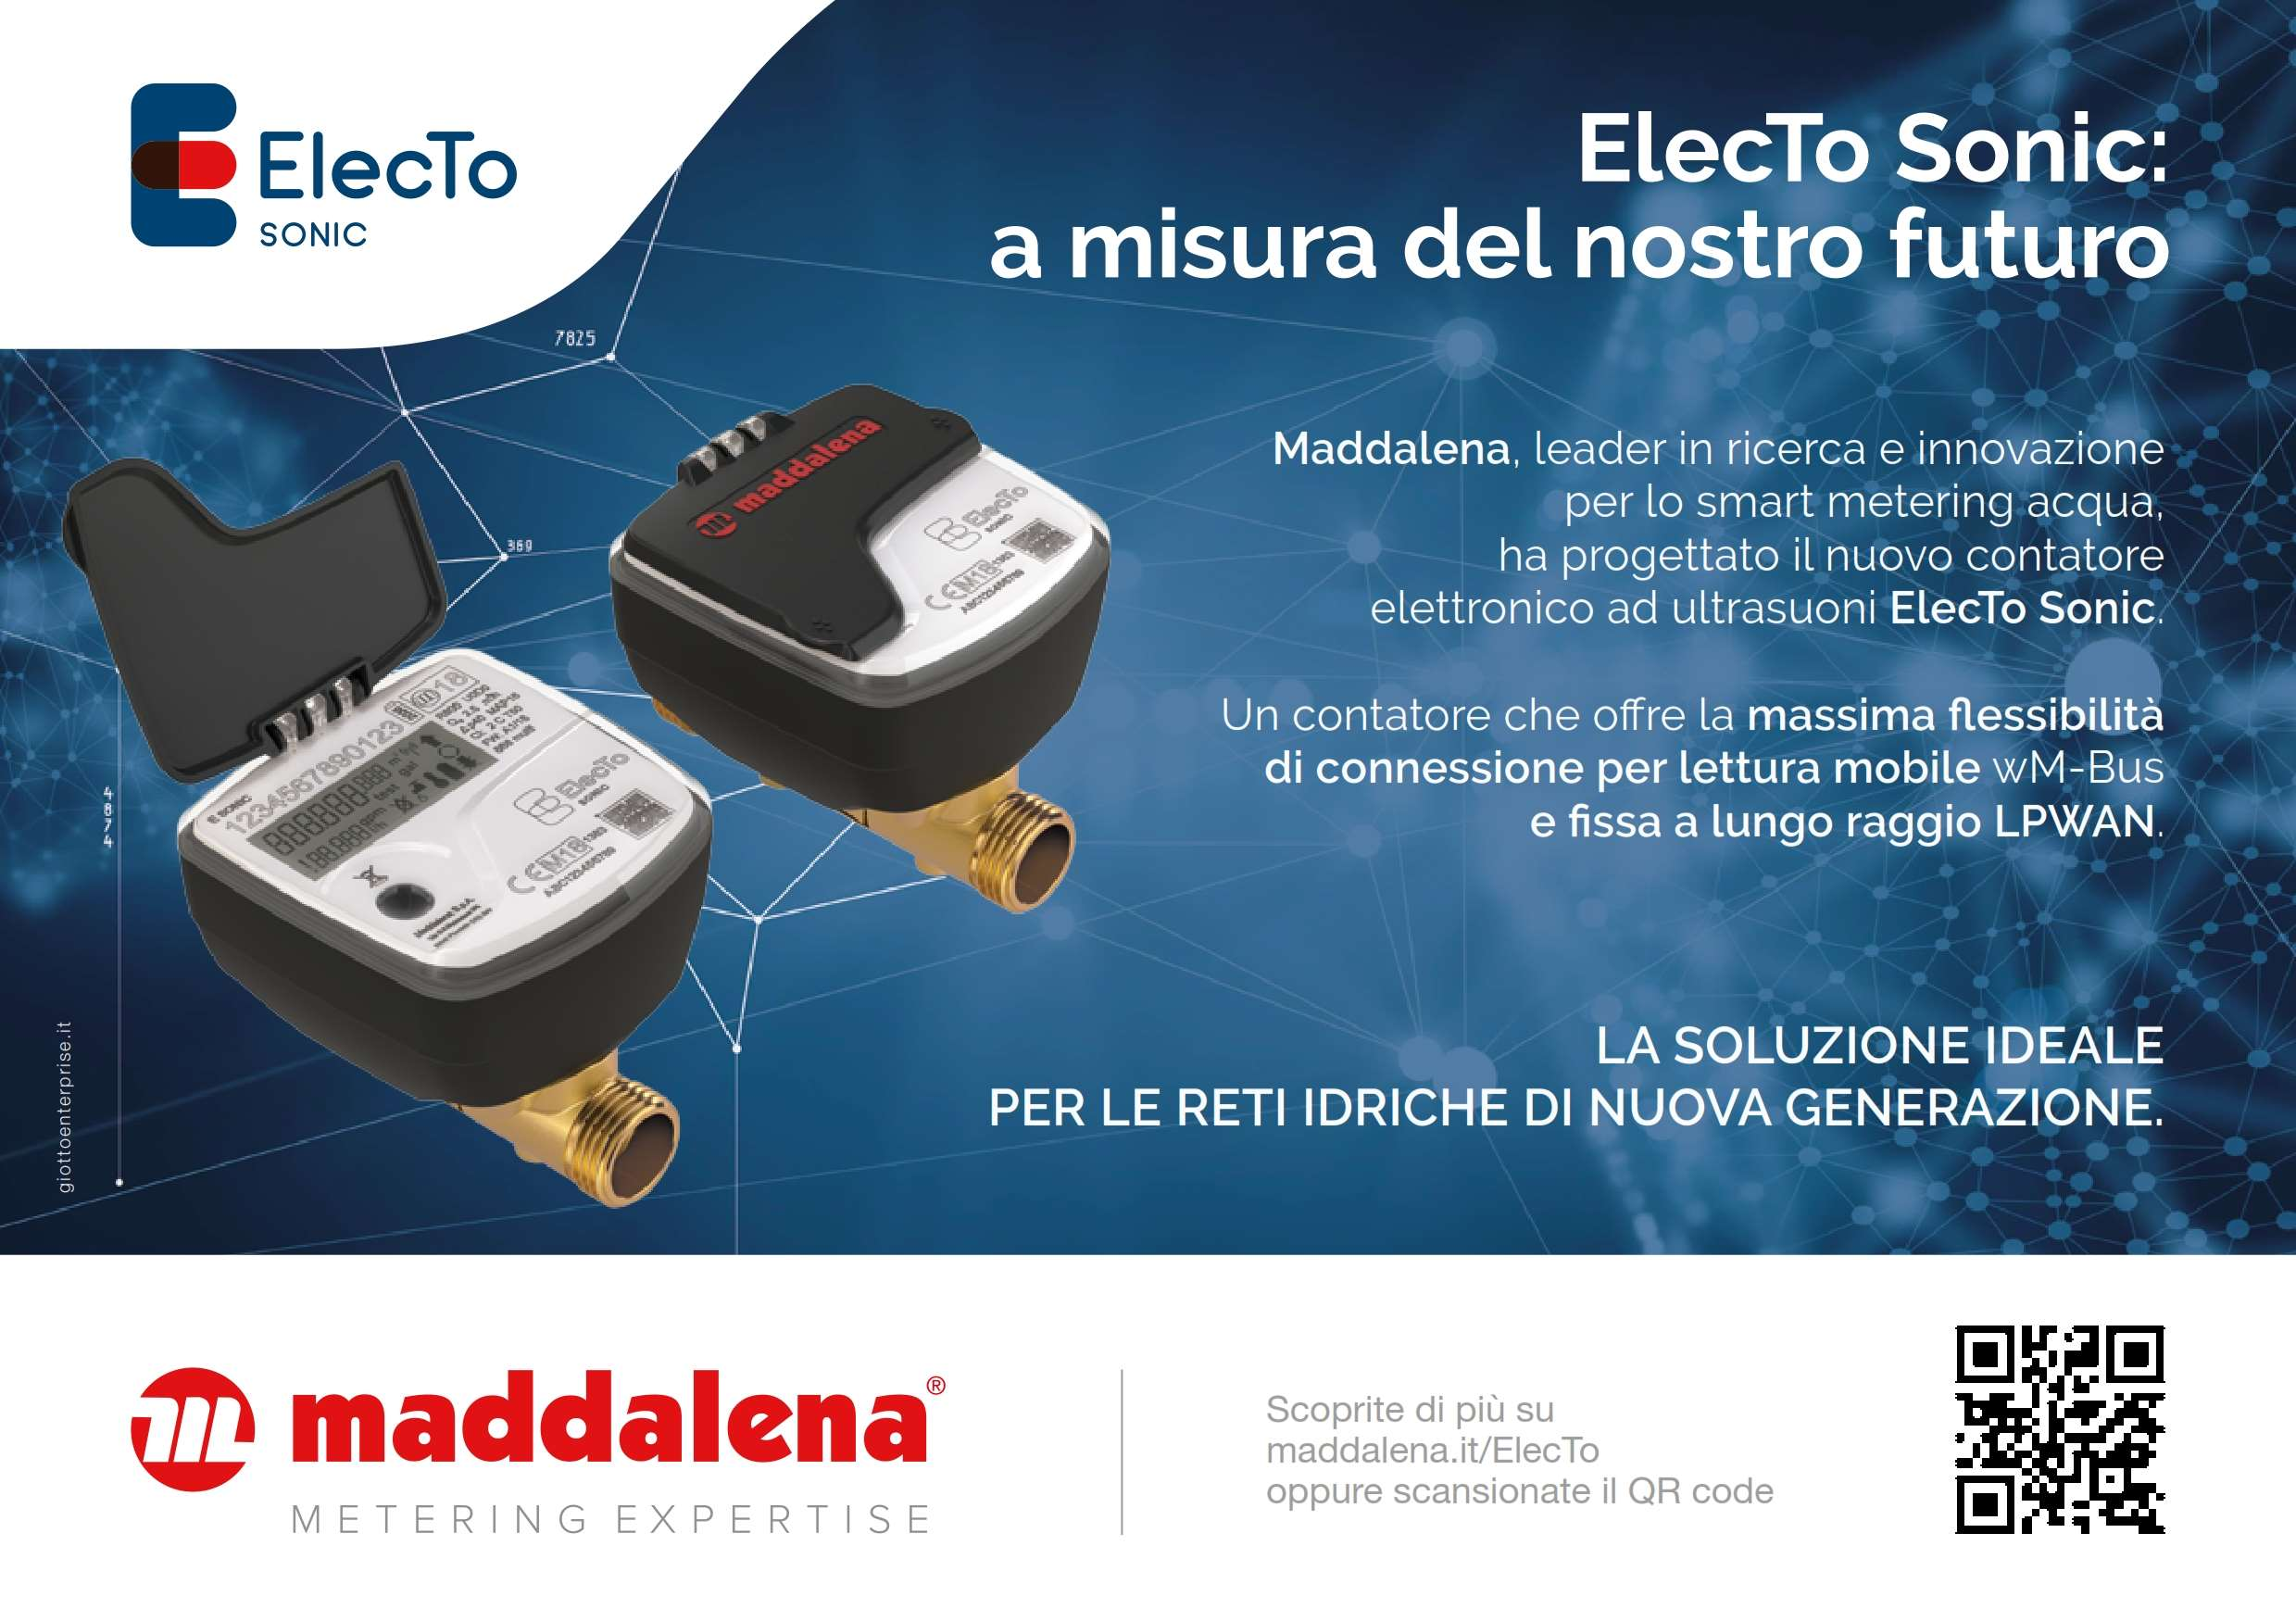 advert-maddalena-ultrasonic-water-meter-electo-sonic